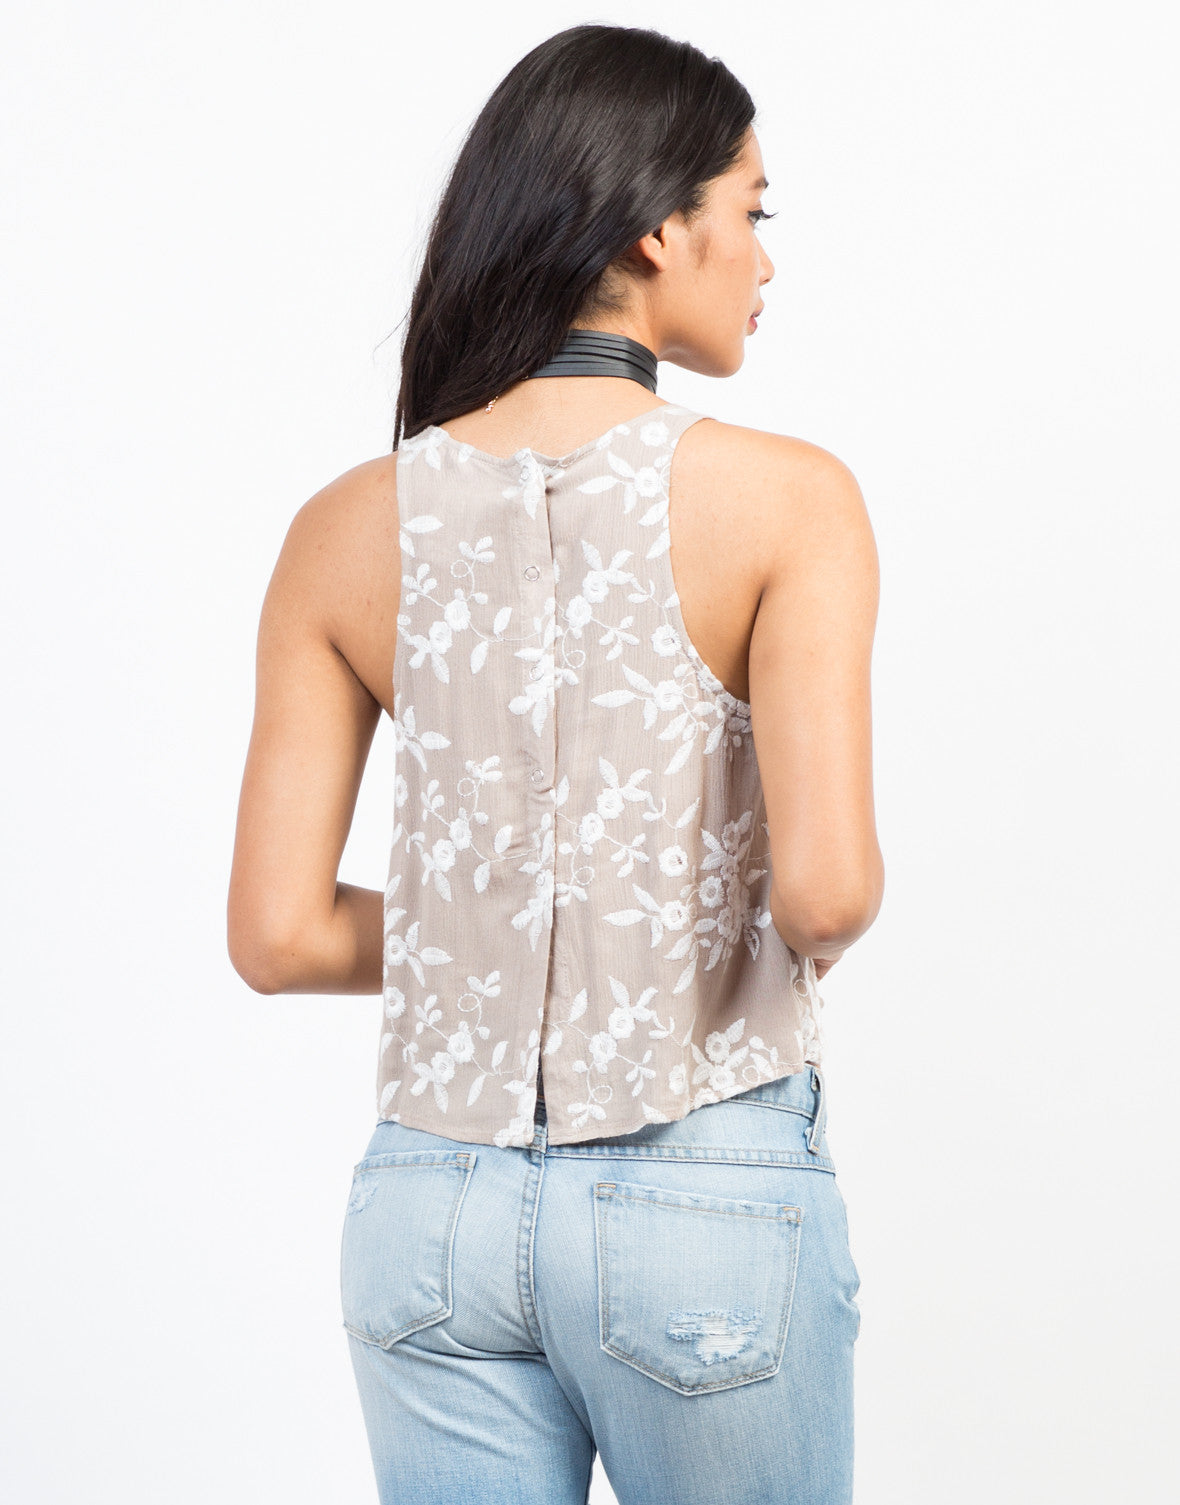 Back View of Stitched Up Floral Tank